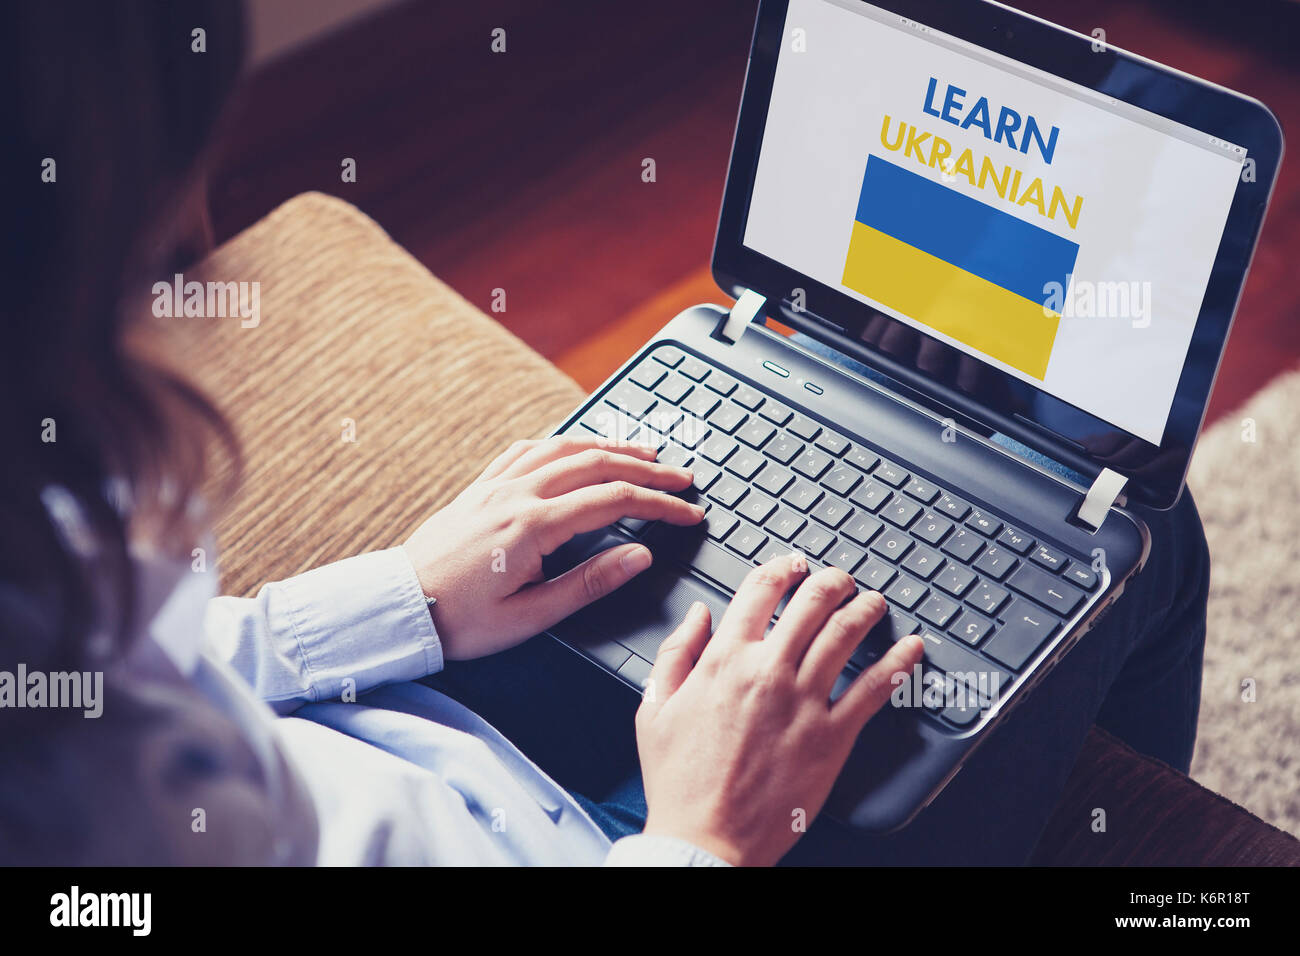 Woman using a laptop computer to learn Ukranian by internet - Stock Image